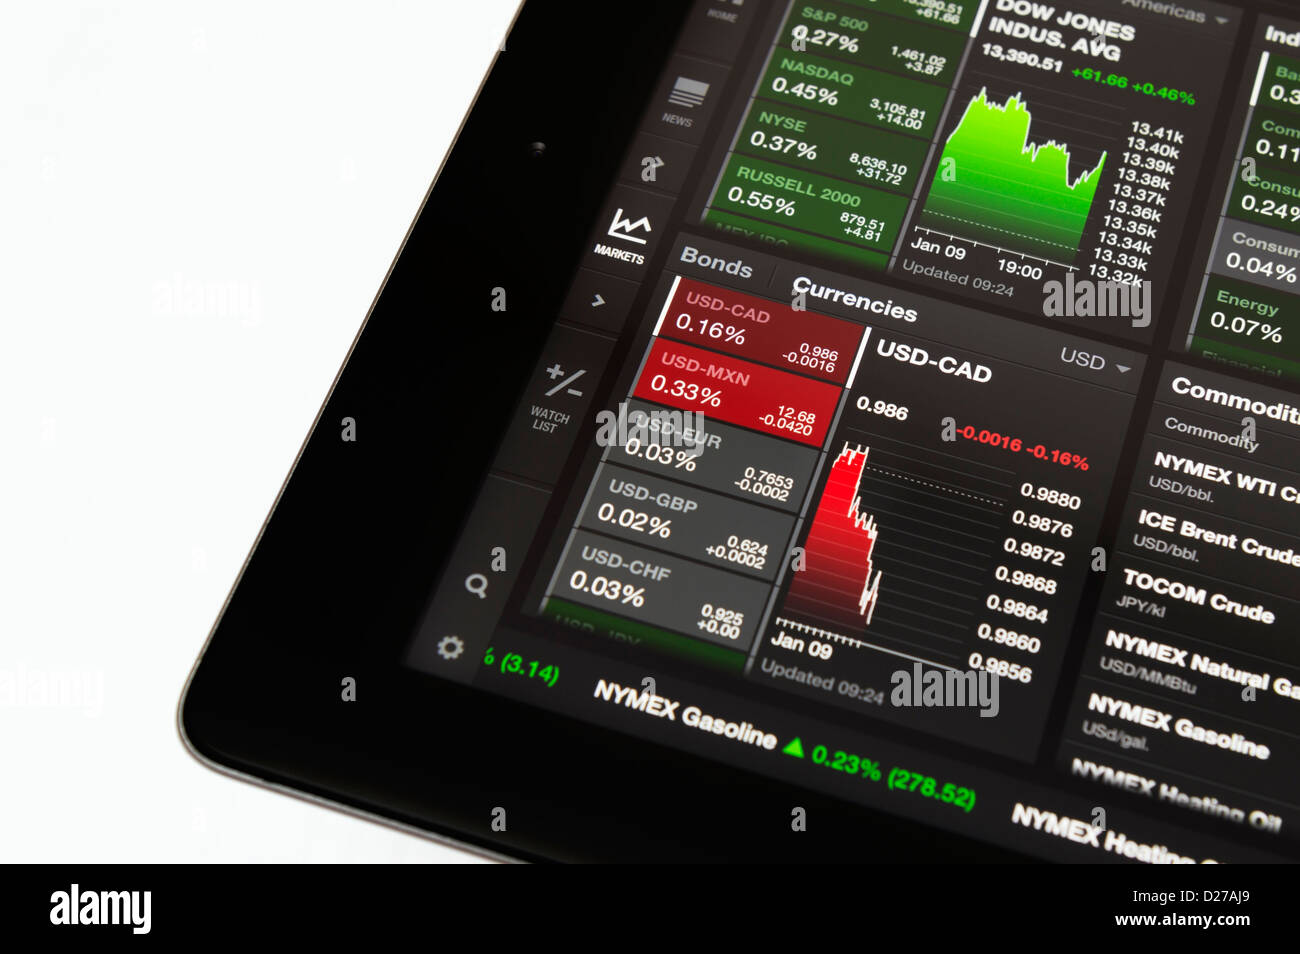 Bloomberg app on Apple iPad tablet showing live stock market news and finance data - Stock Image